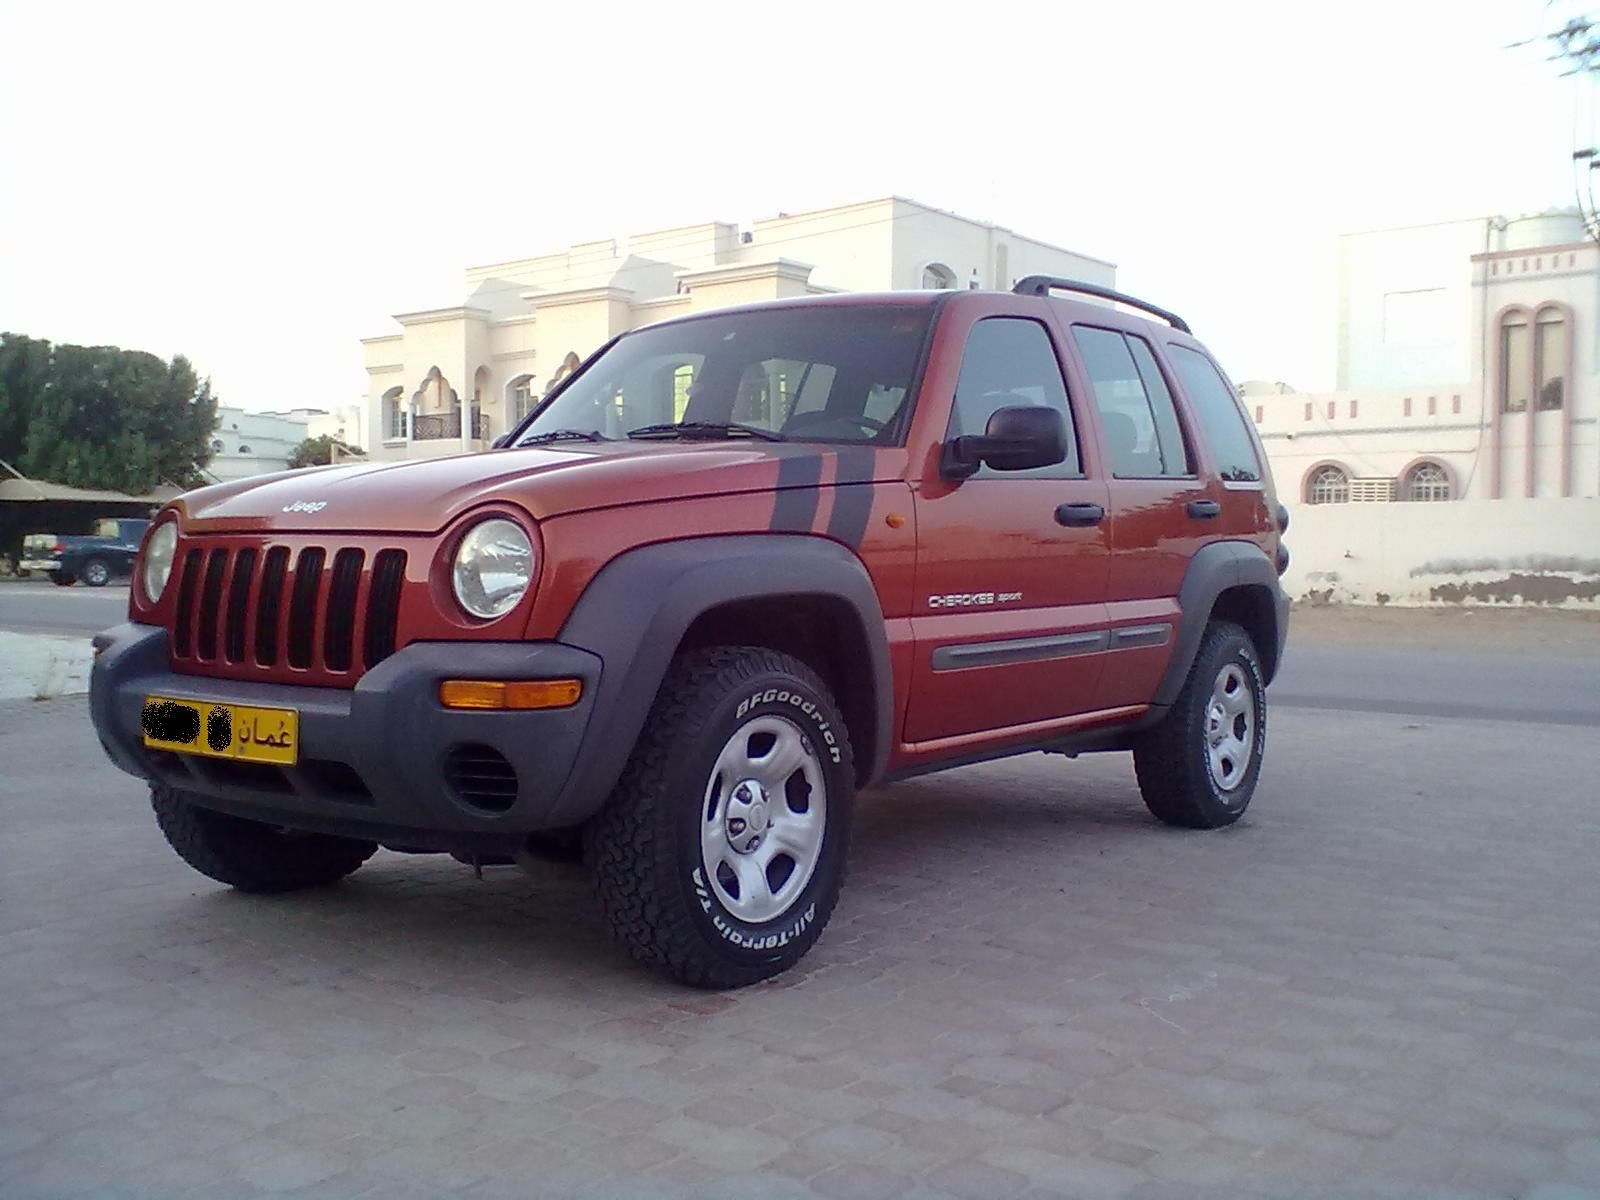 Pin by Mohamed Saad on Liberty Jeep liberty, Jeep, Cars